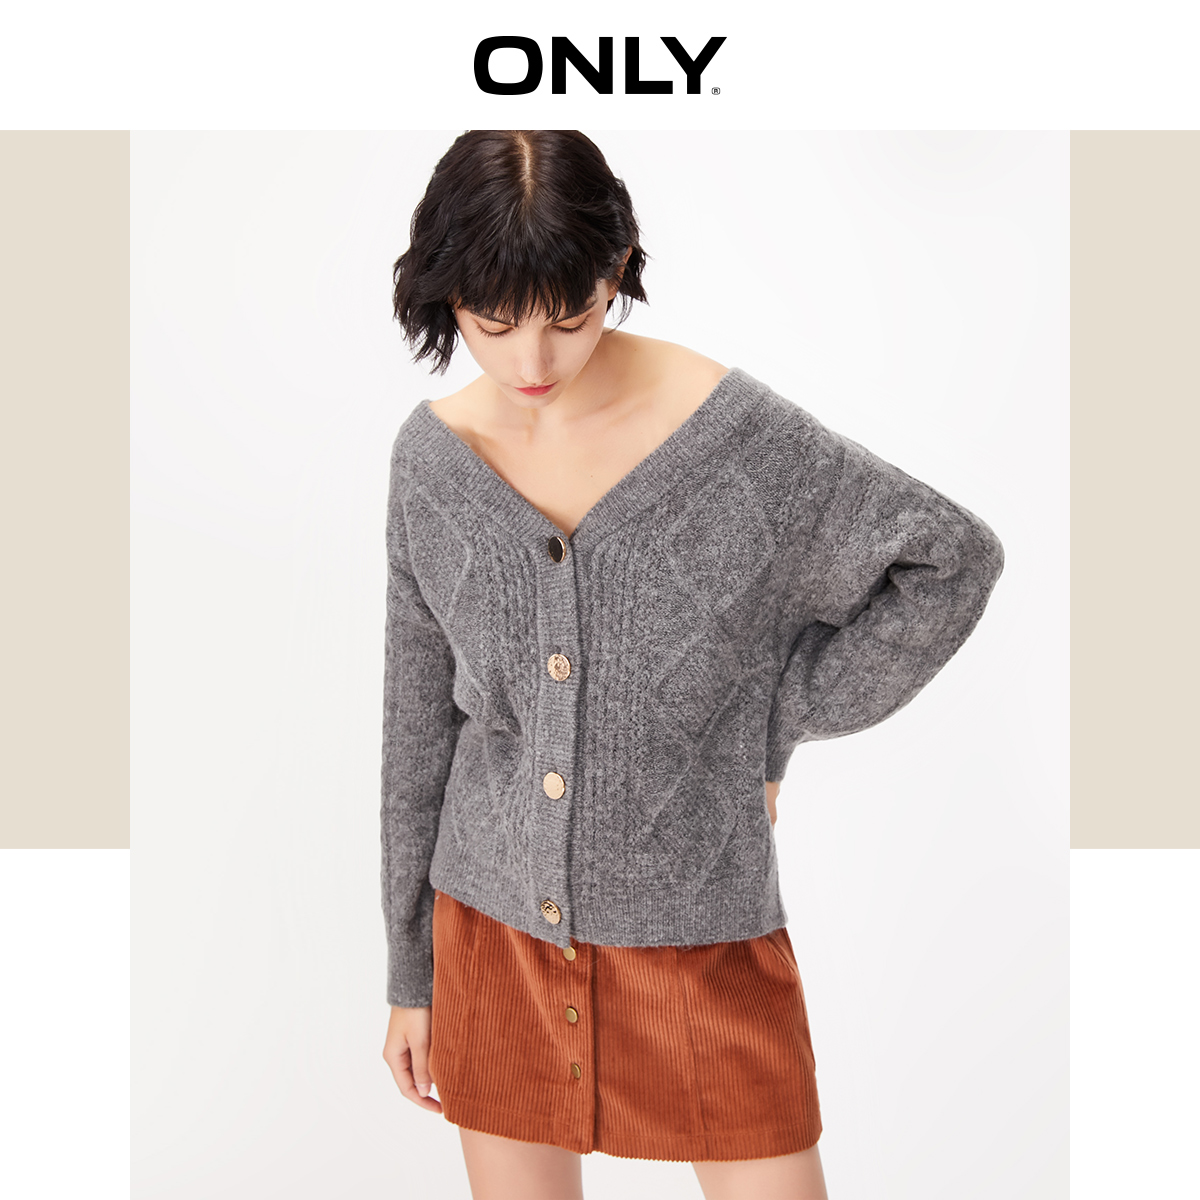 ONLY Women's Cardigan Knit Sweater | 11933B509